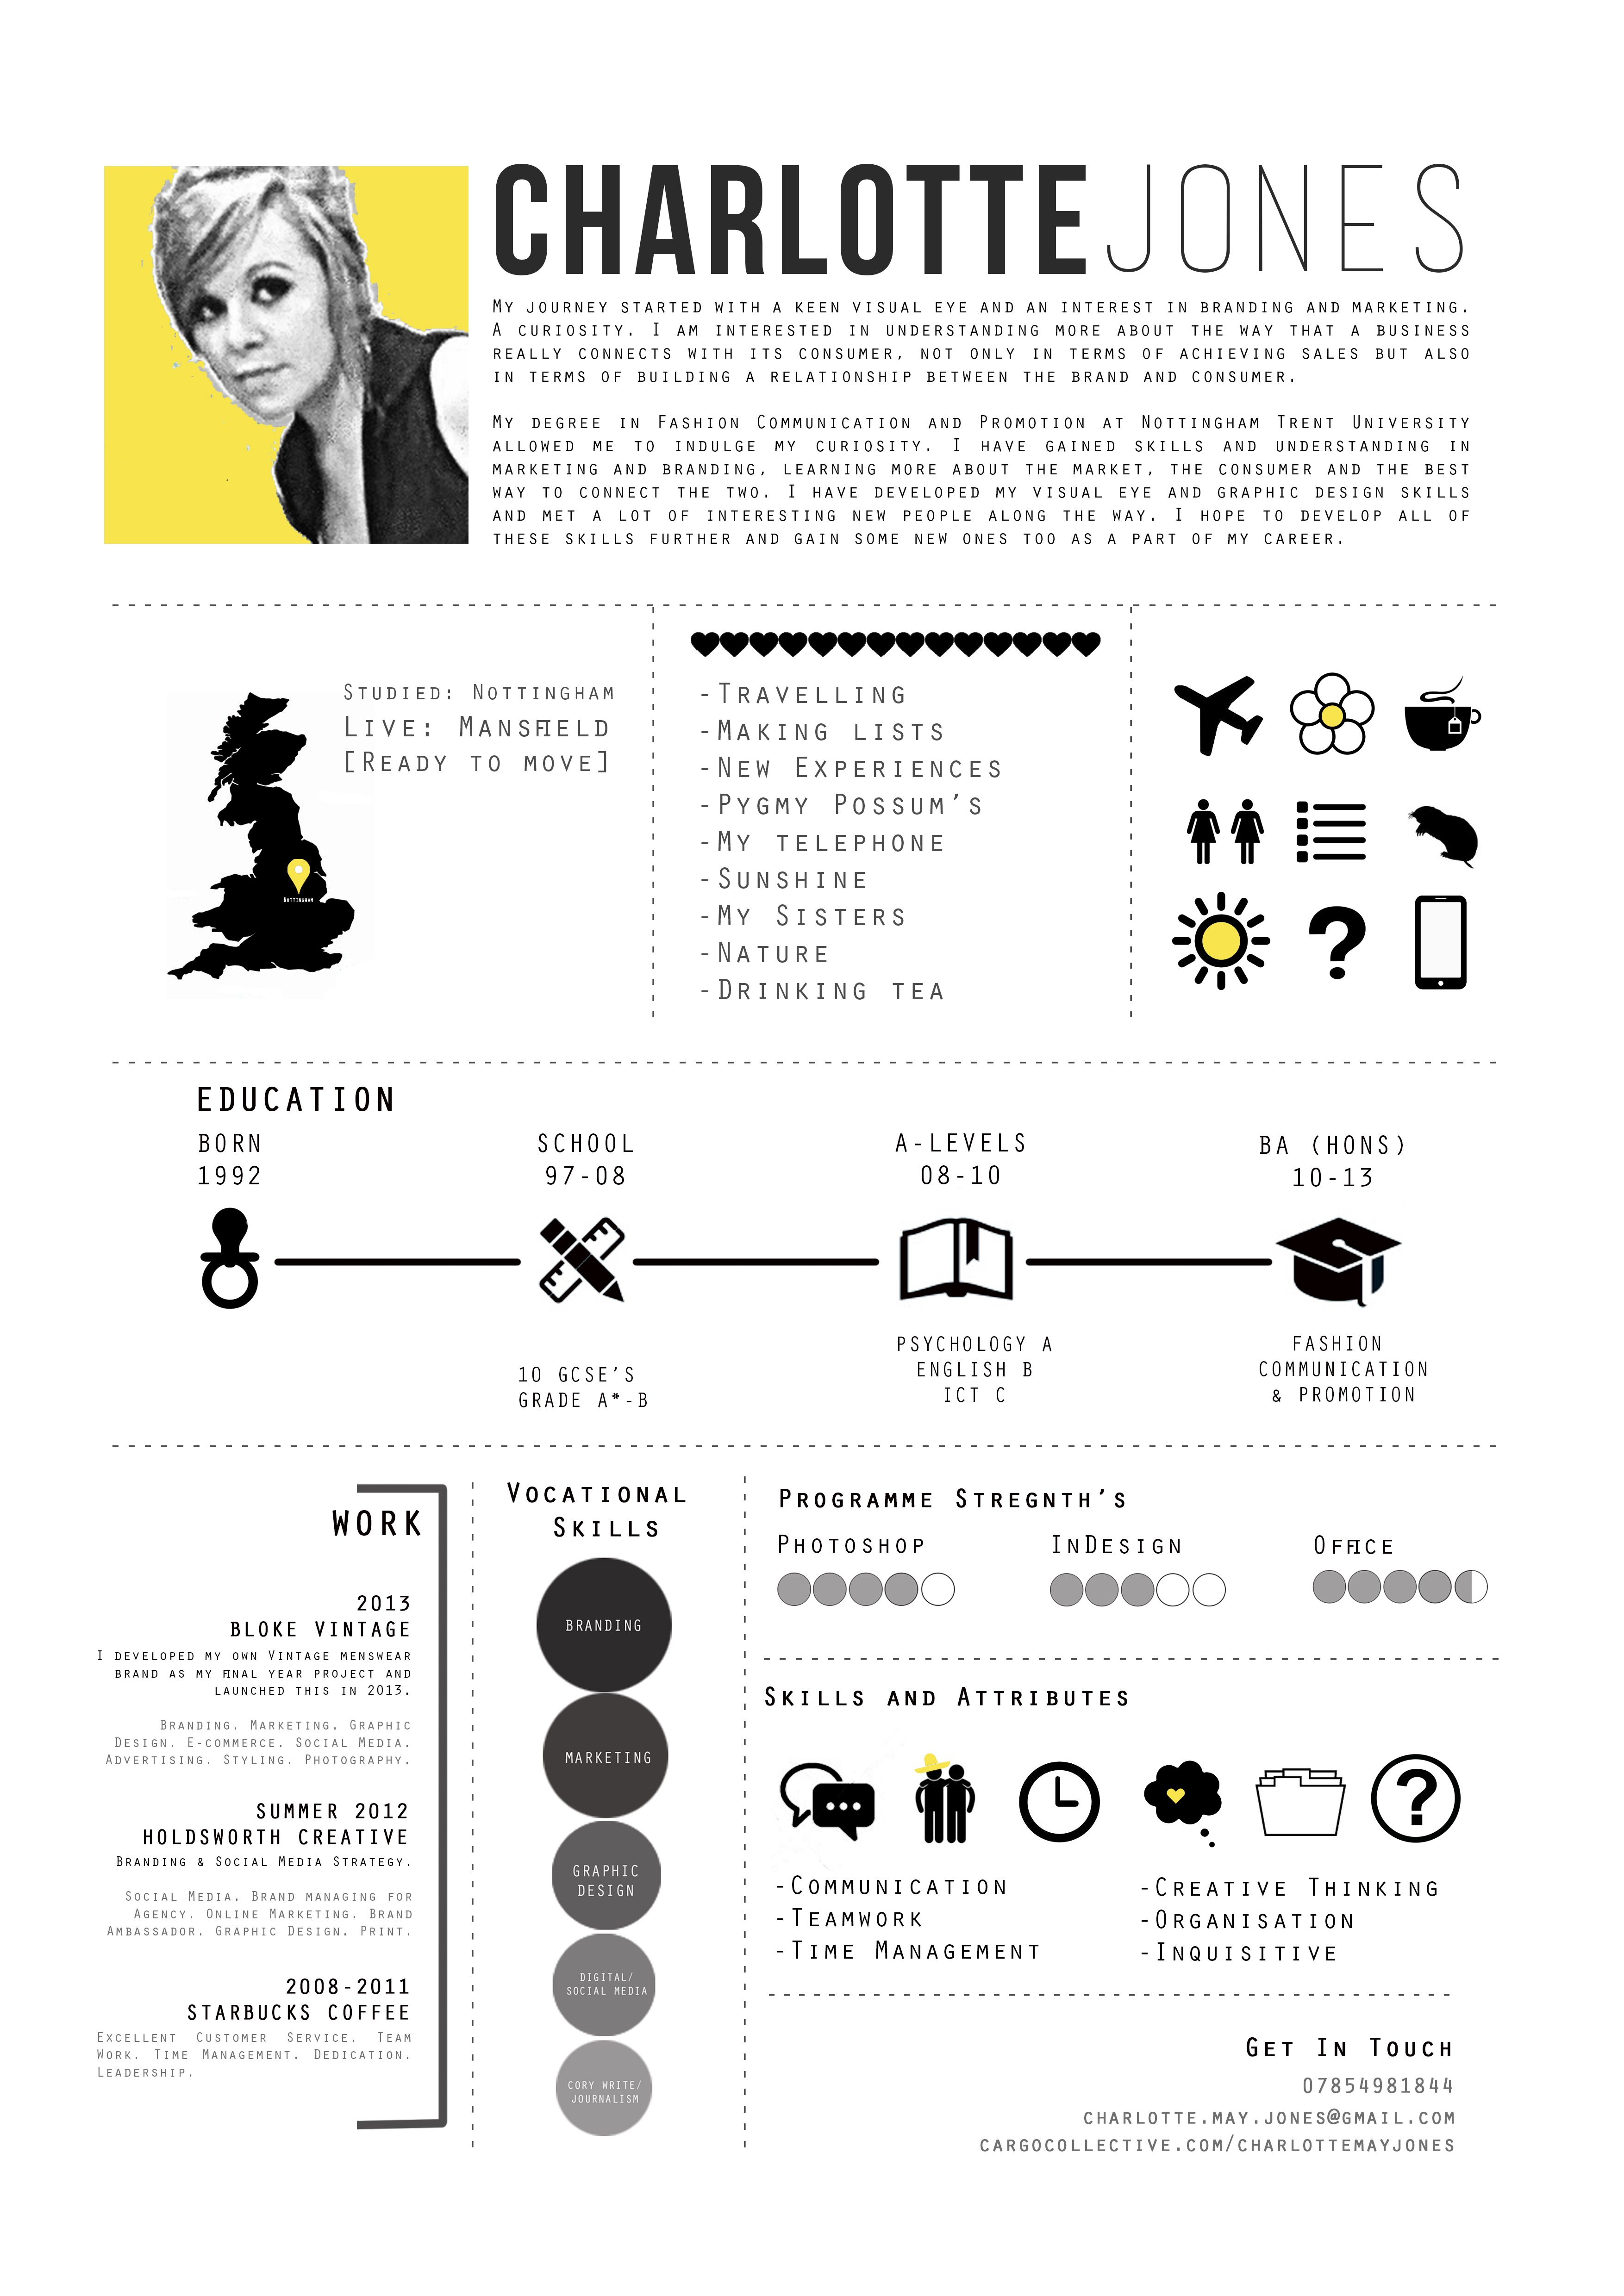 Fashion Communication And Promotion Marketing And Branding Cv Curriculum Vitae Resume Infographic Resume Creative Cv Resume Design Inspiration